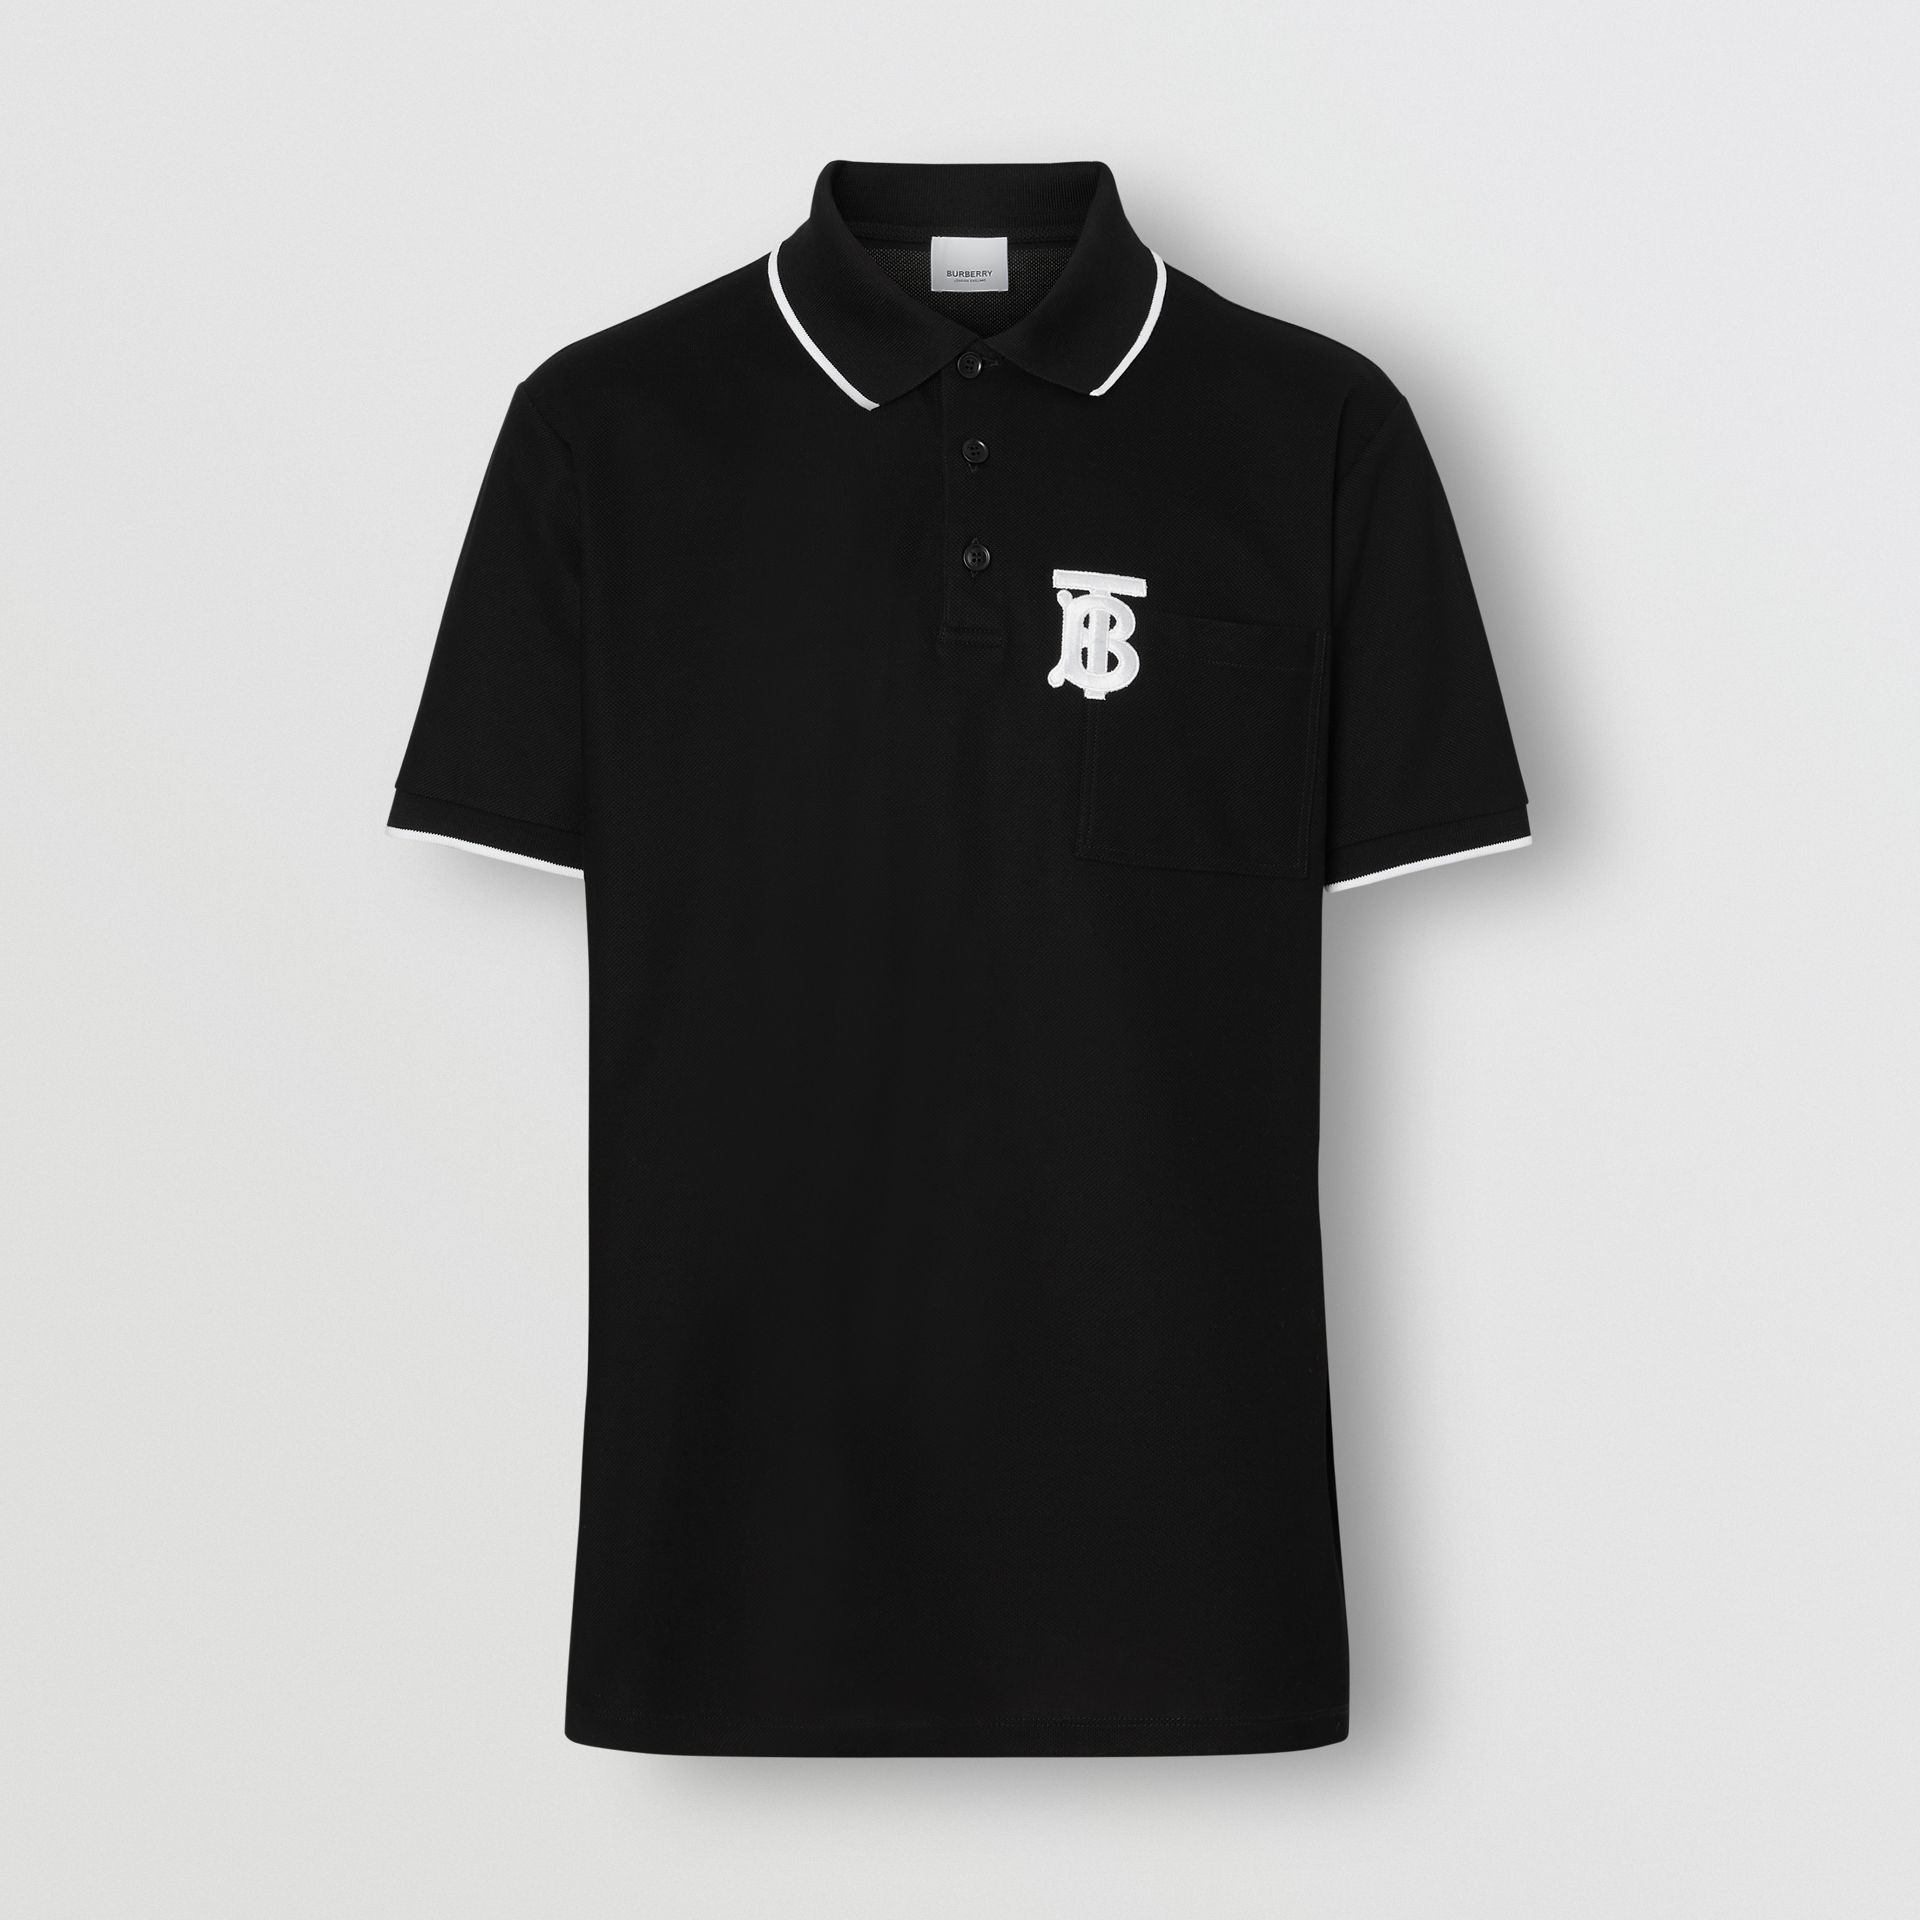 Monogram Motif Tipped Cotton Piqué Polo Shirt in Black - Men | Burberry United Kingdom - gallery image 3